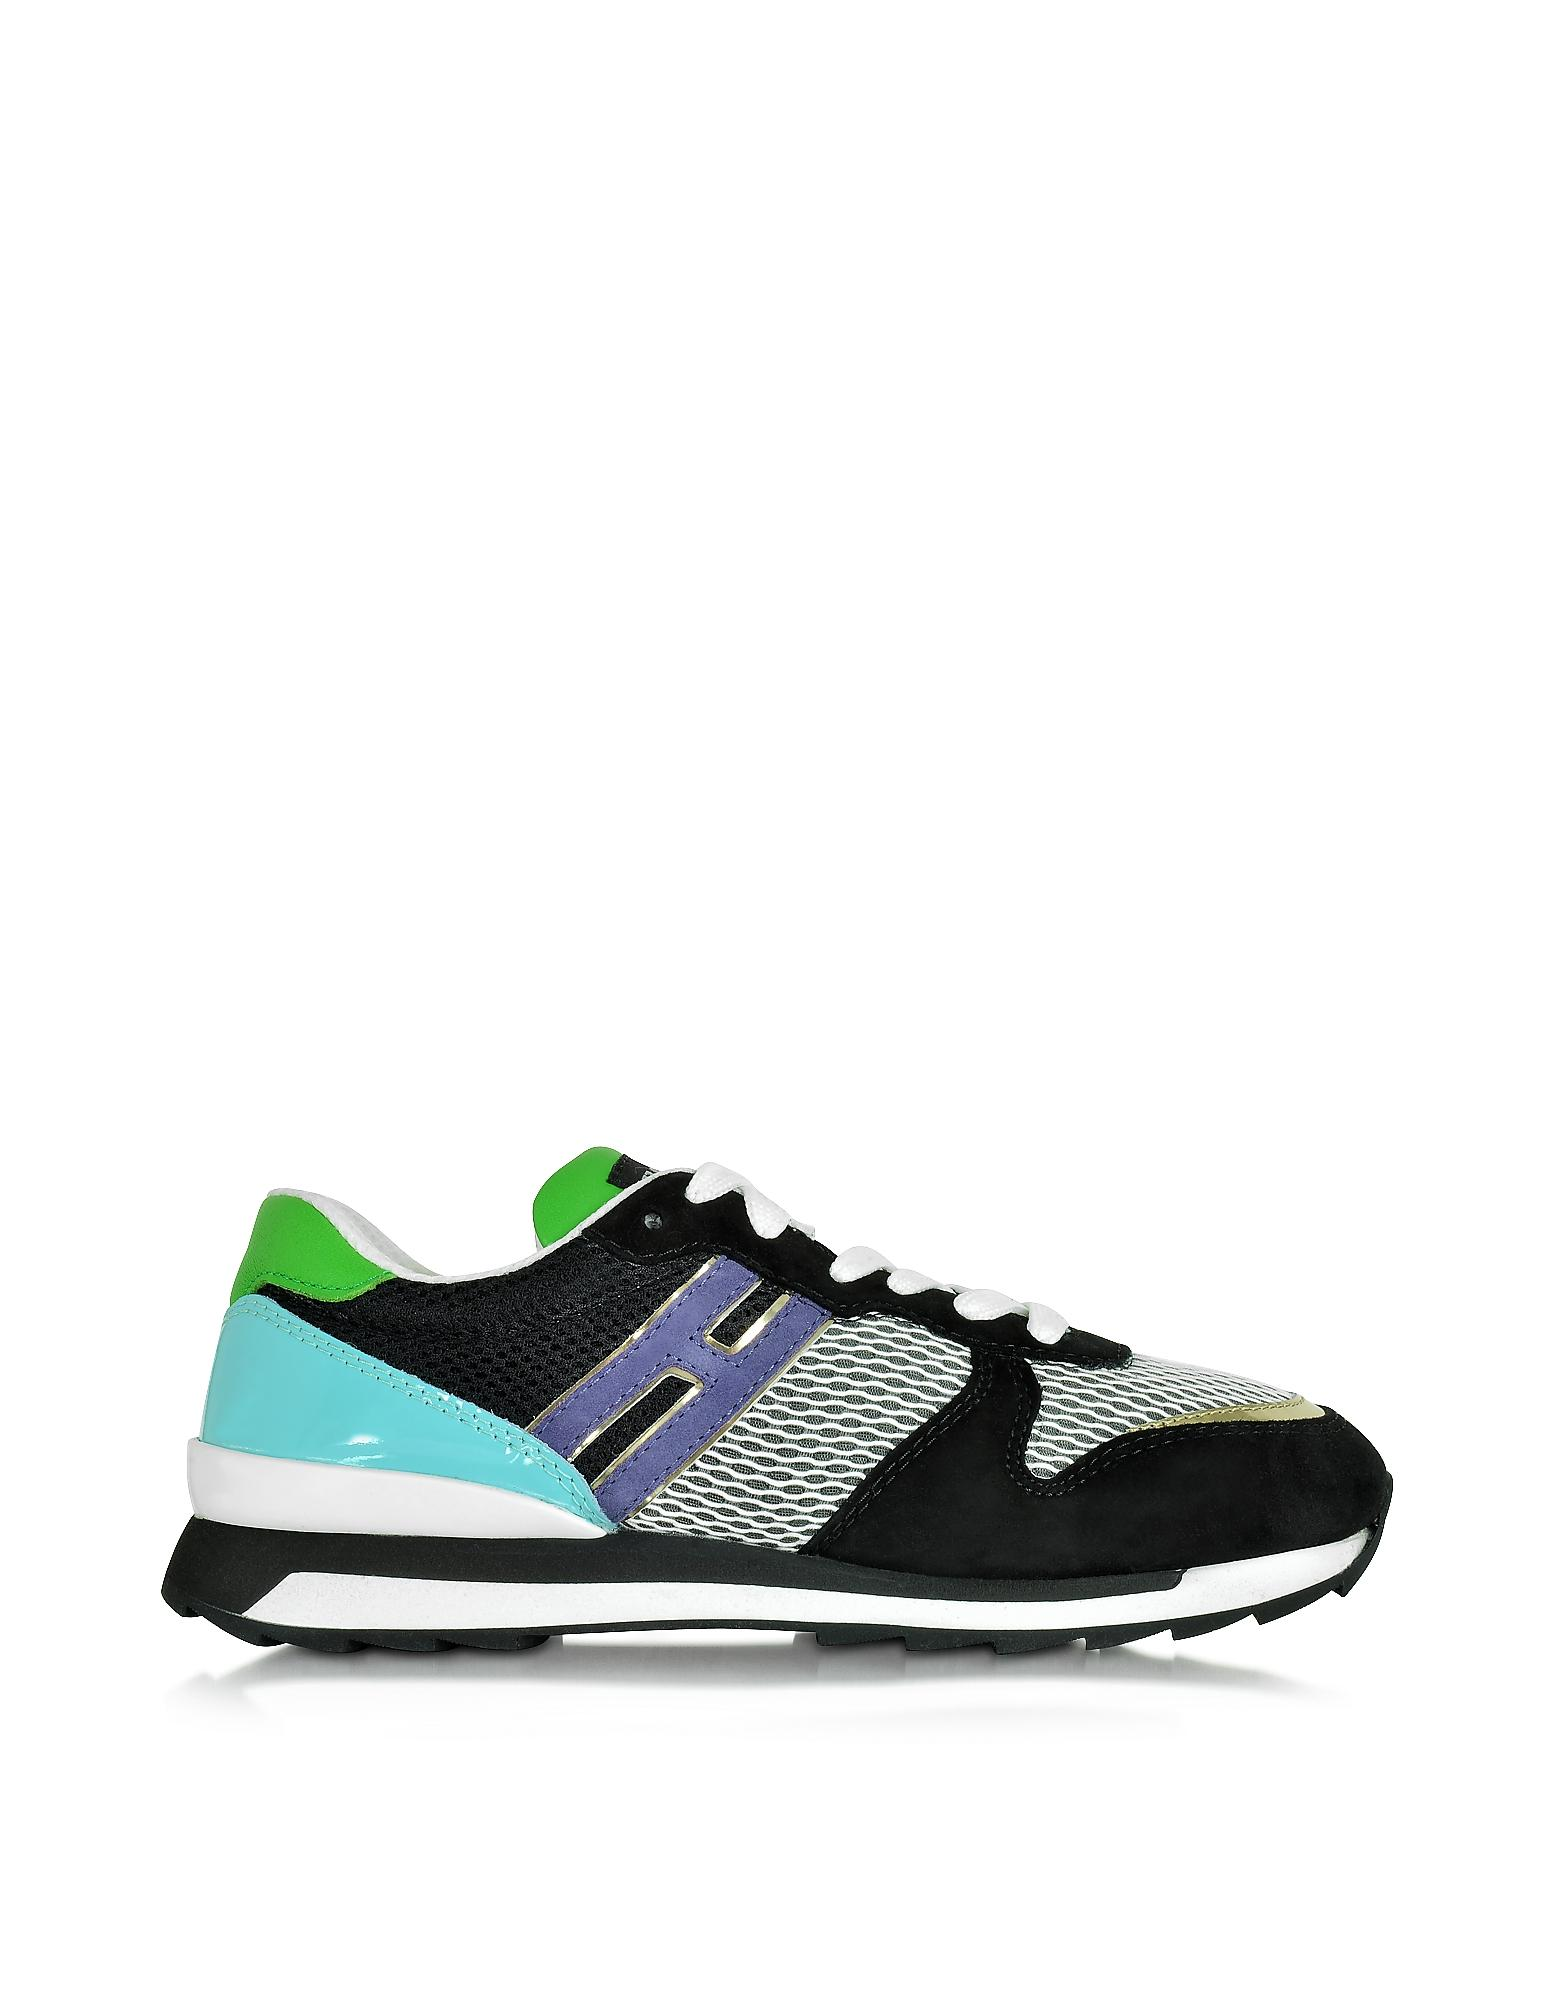 Forzieri Hogan Lyst Hogan Rebel R261 Multicolor Leather And Suede Sneaker